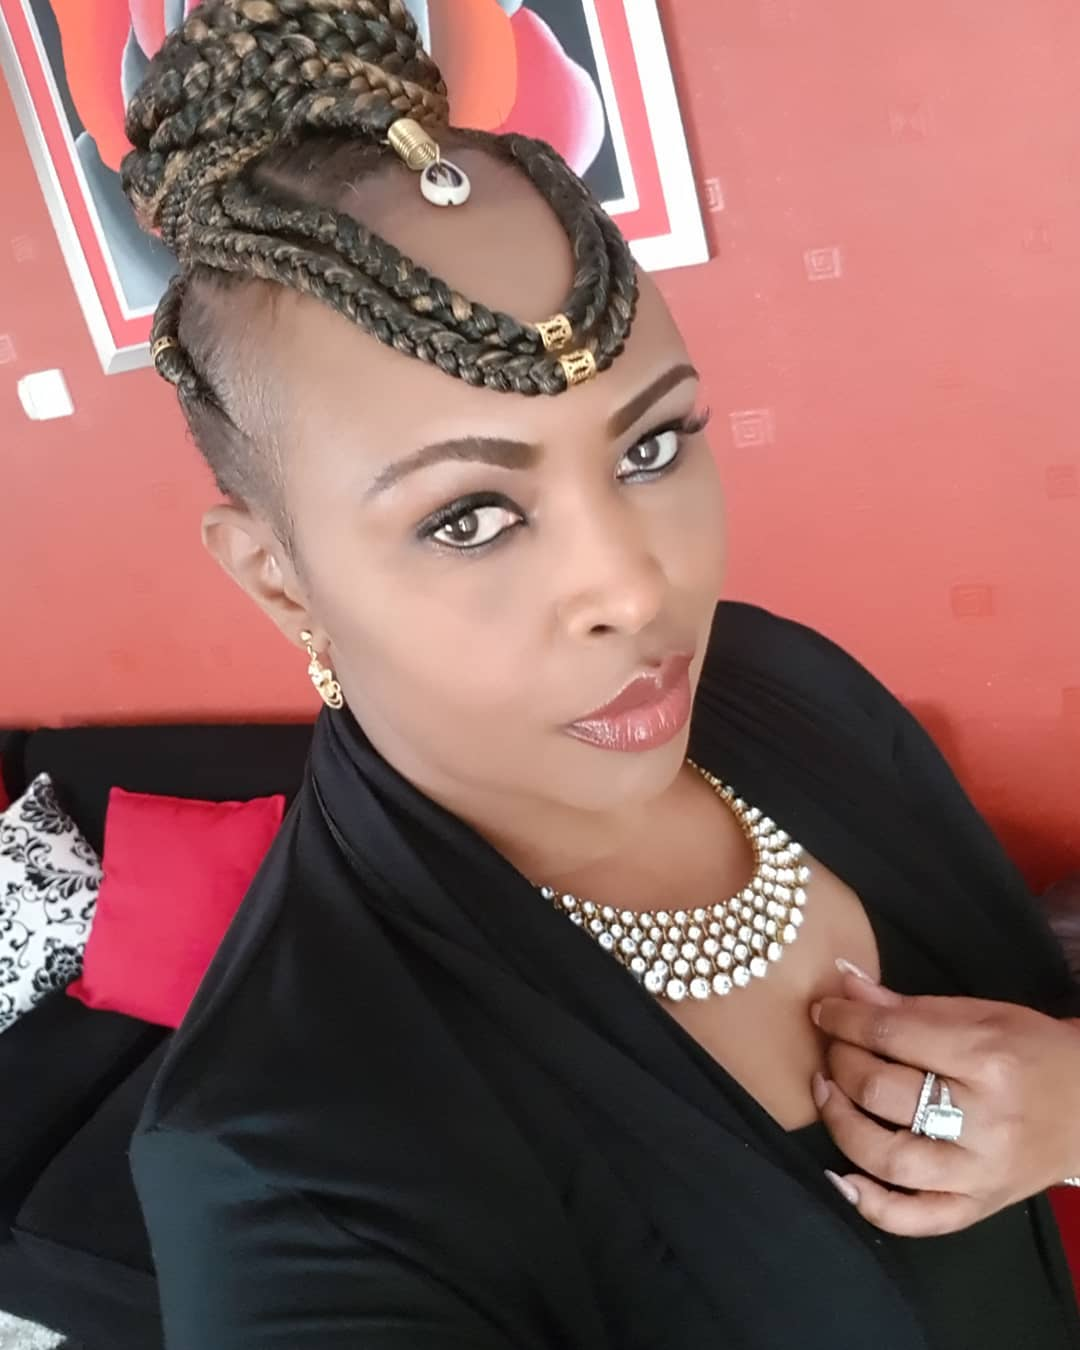 43447314 571738619944689 3261991971542461443 n - 'My home is off limits', Caroline Mutoko speaks on protecting her private life